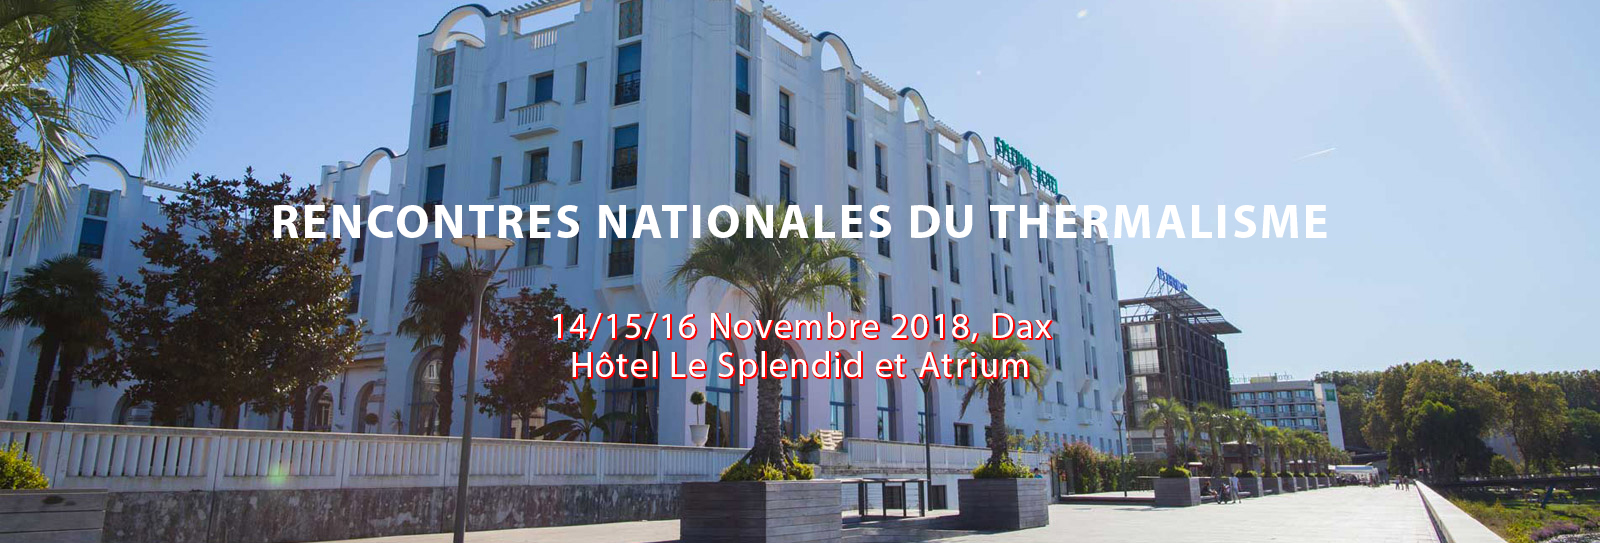 RENCONTRES NATIONALES DU THERMALISME